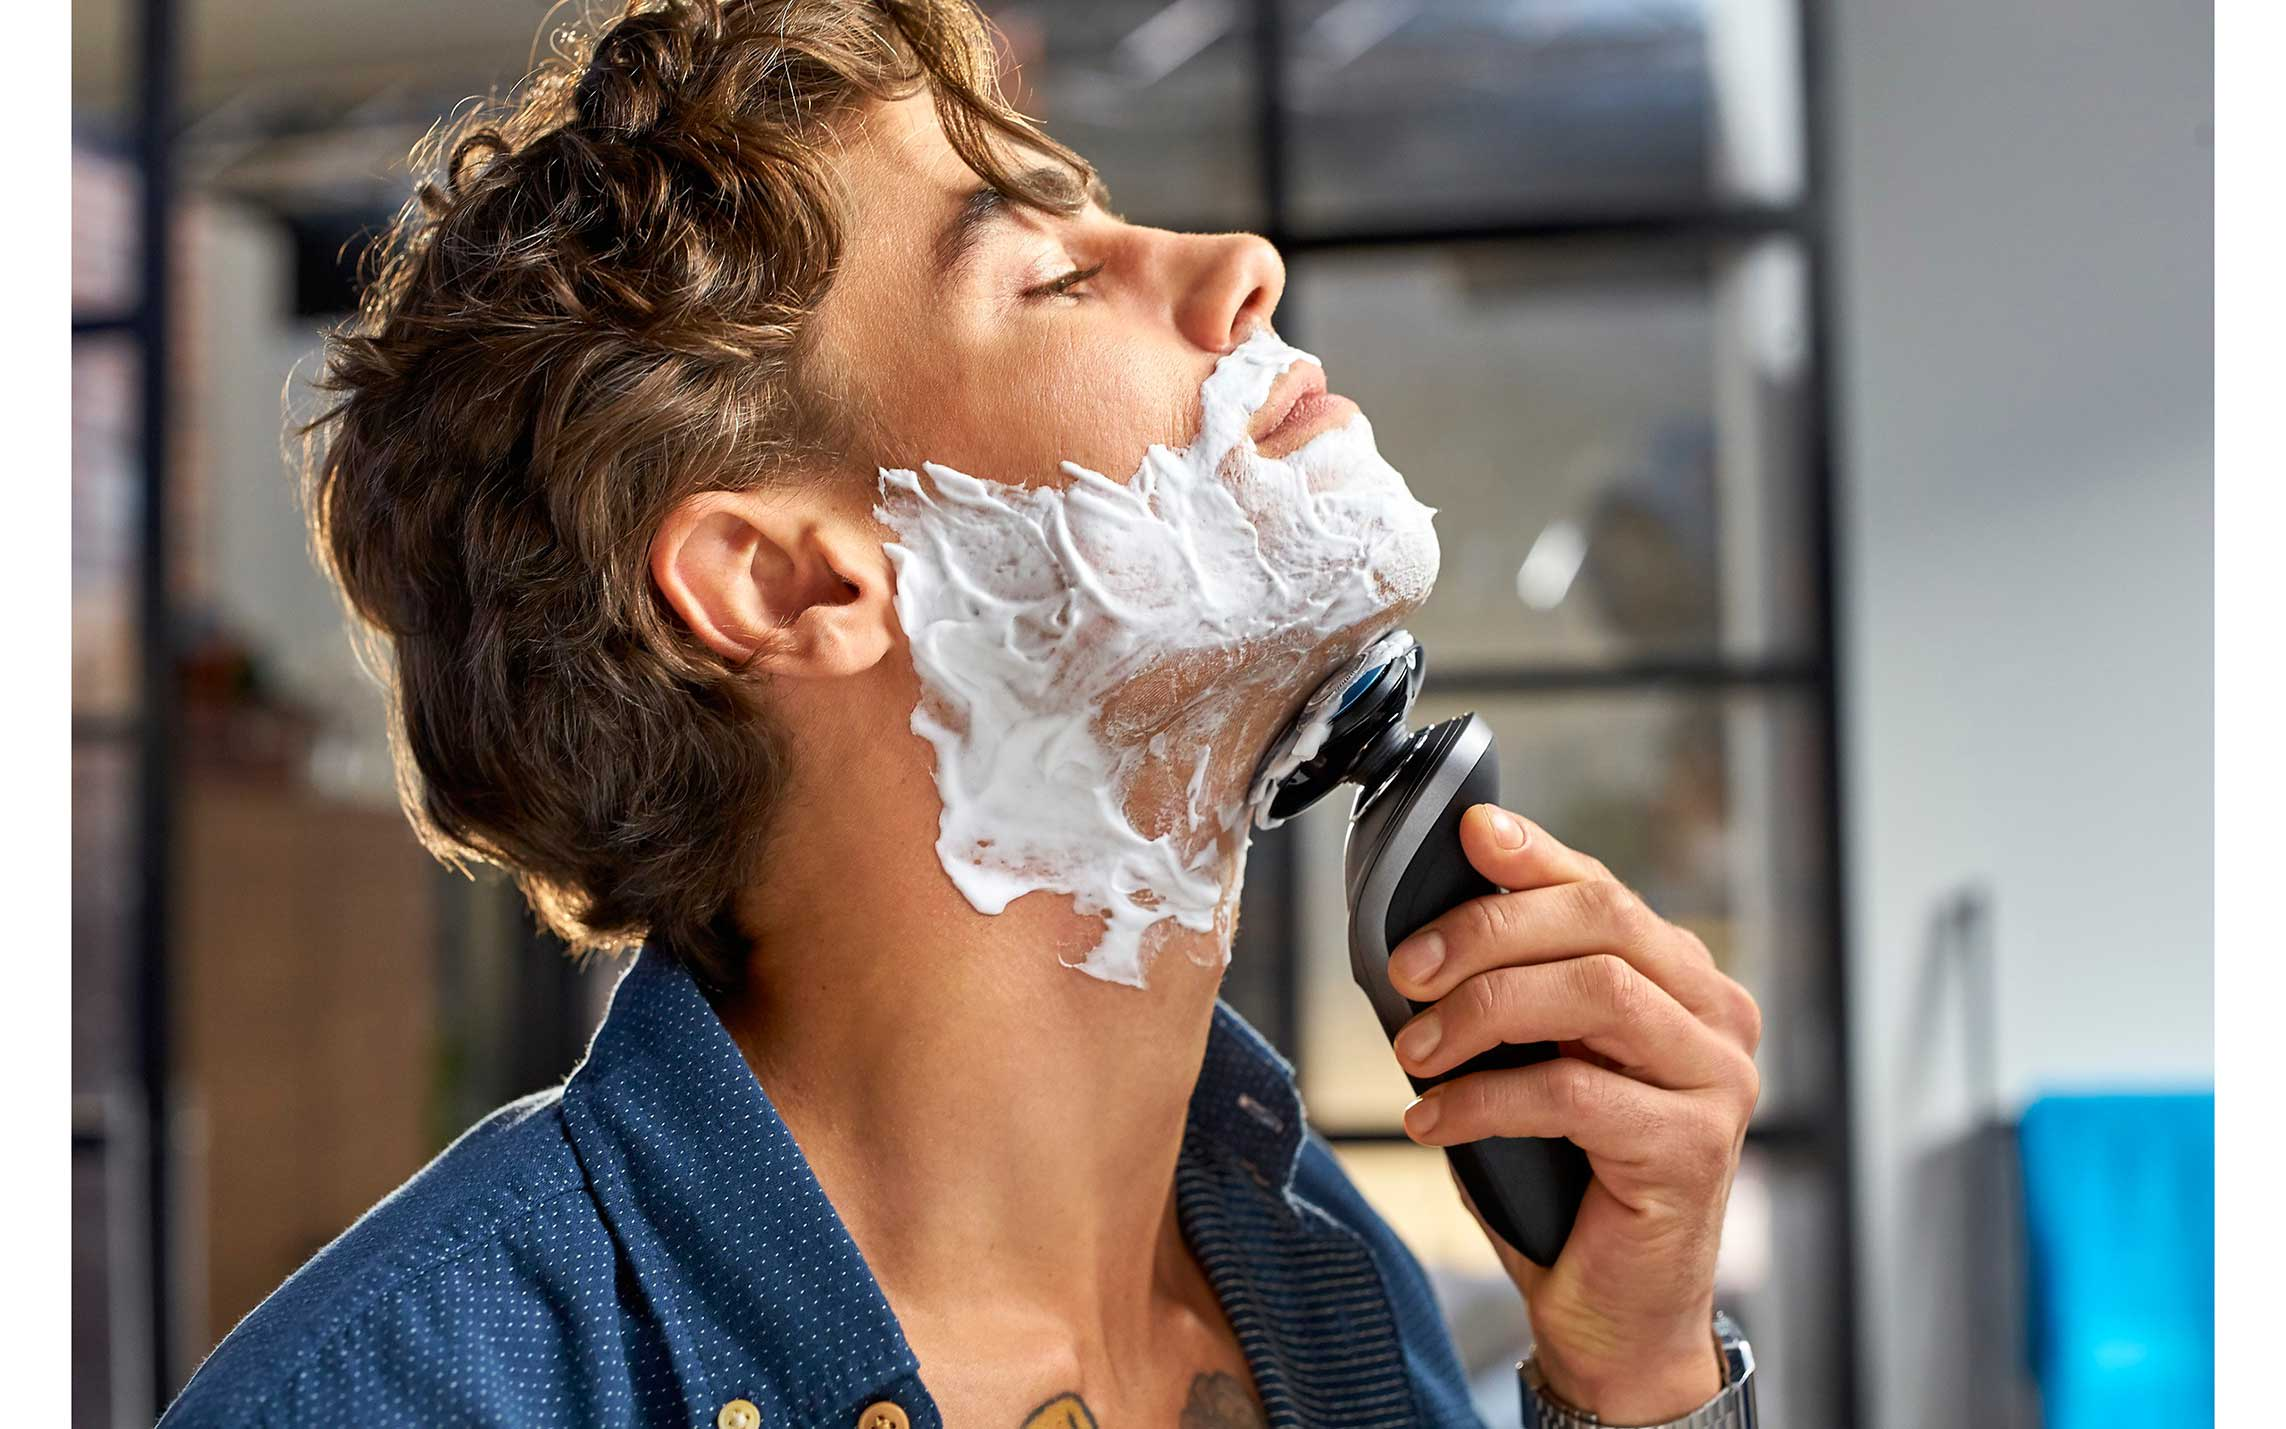 The-Best-Electric-Shavers-In-The-UAE